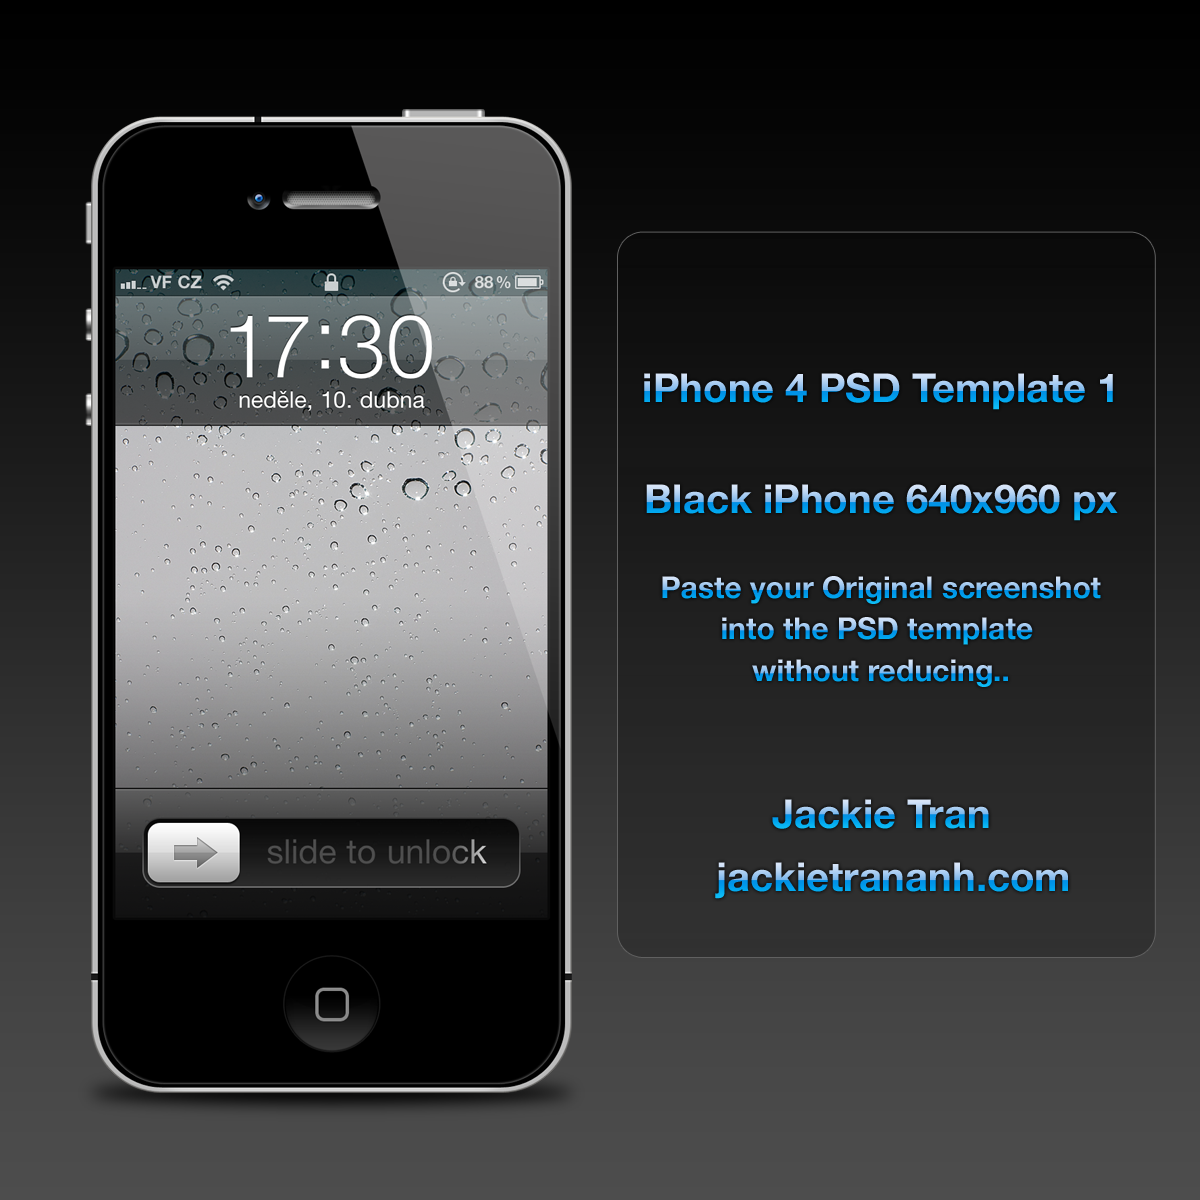 iPhone 4 Template v.1 by JackieTran on DeviantArtIphone 4 Template